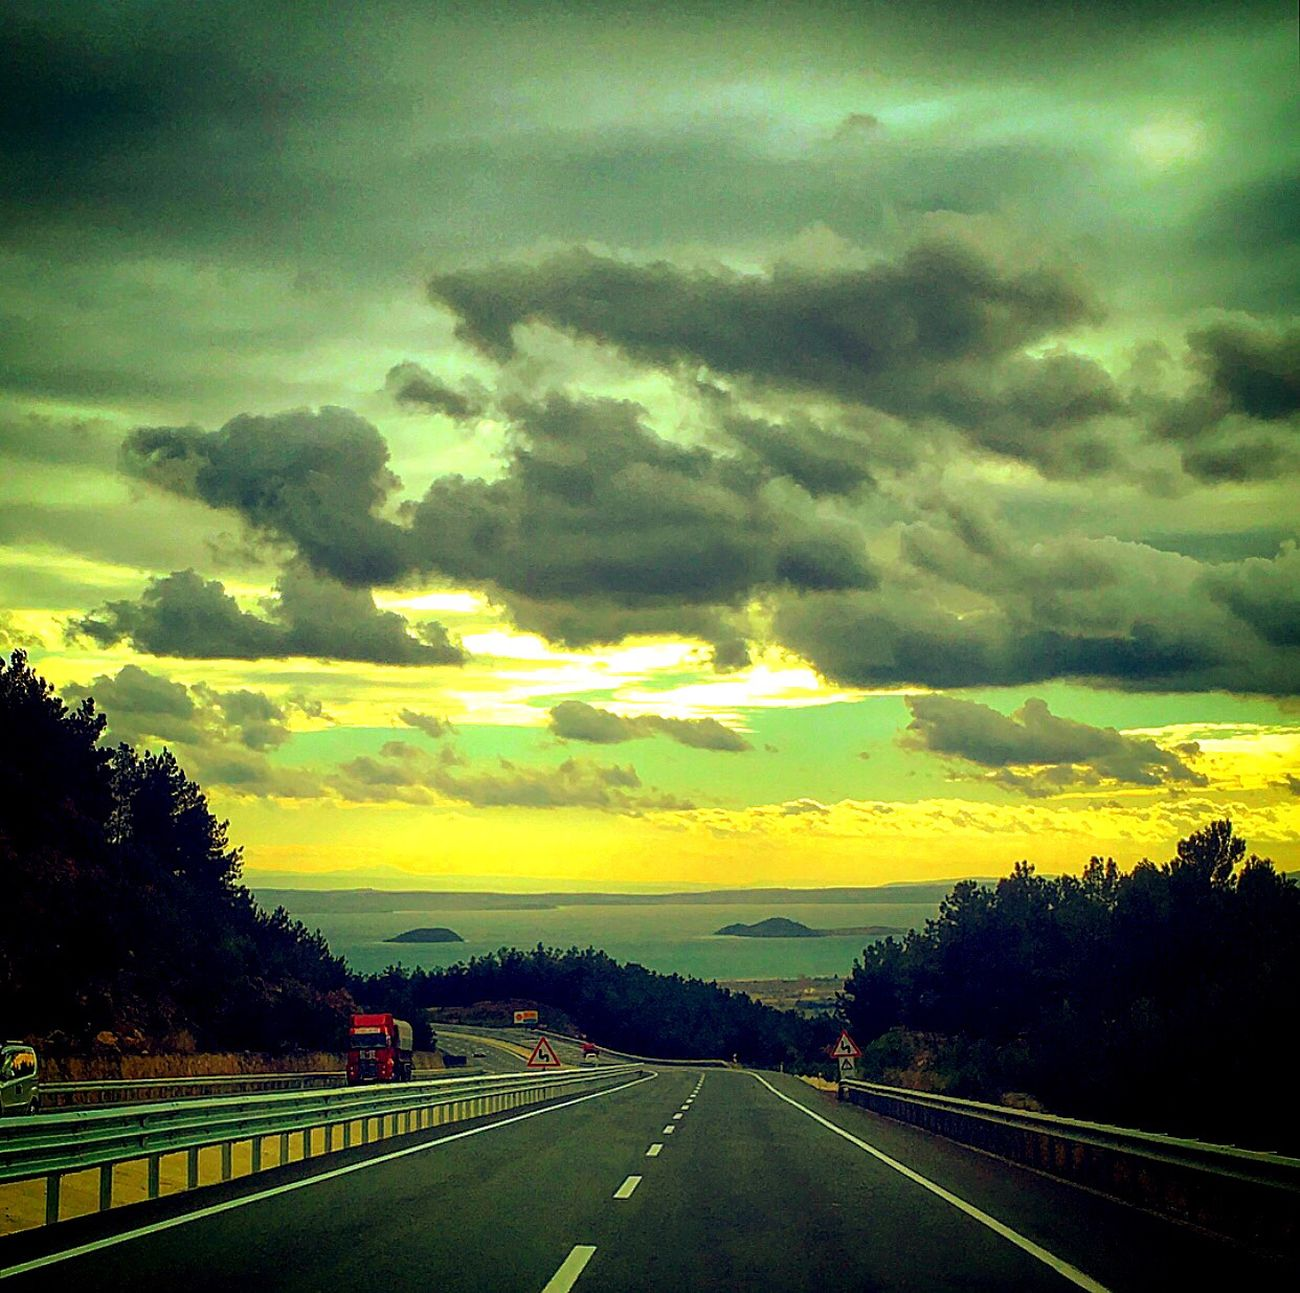 On The Road Ontheroad Sea Road Cloud - Sky Cold Sunset Tree Trees No People Beauty In Nature